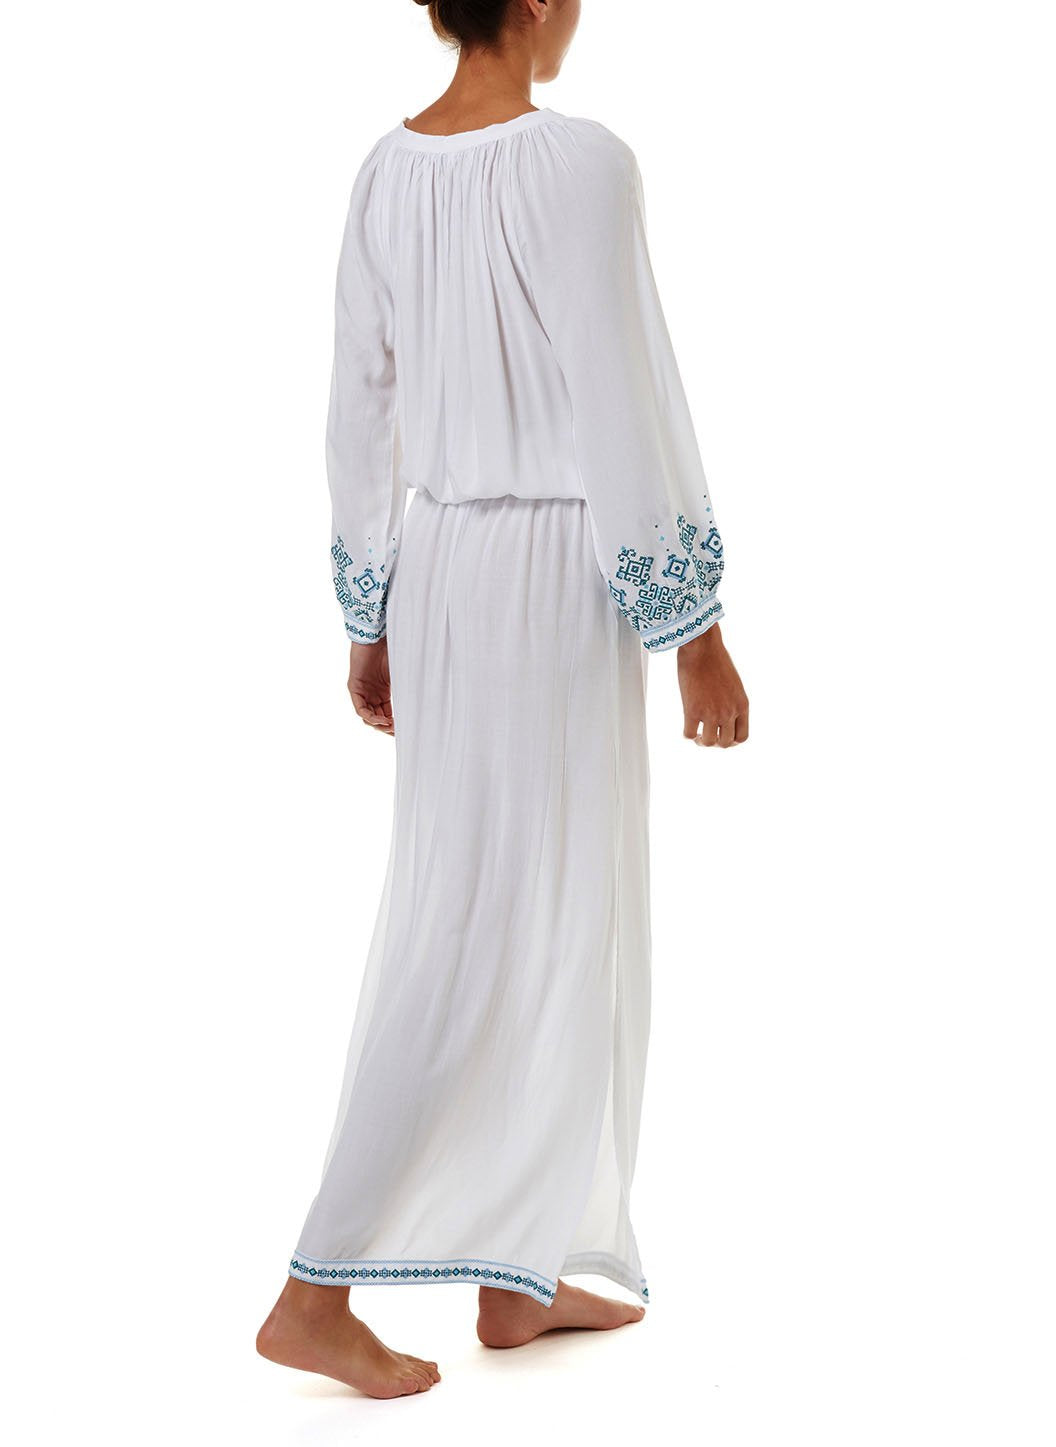 sienna white green embroidered 34sleeve maxi dress 2019 B